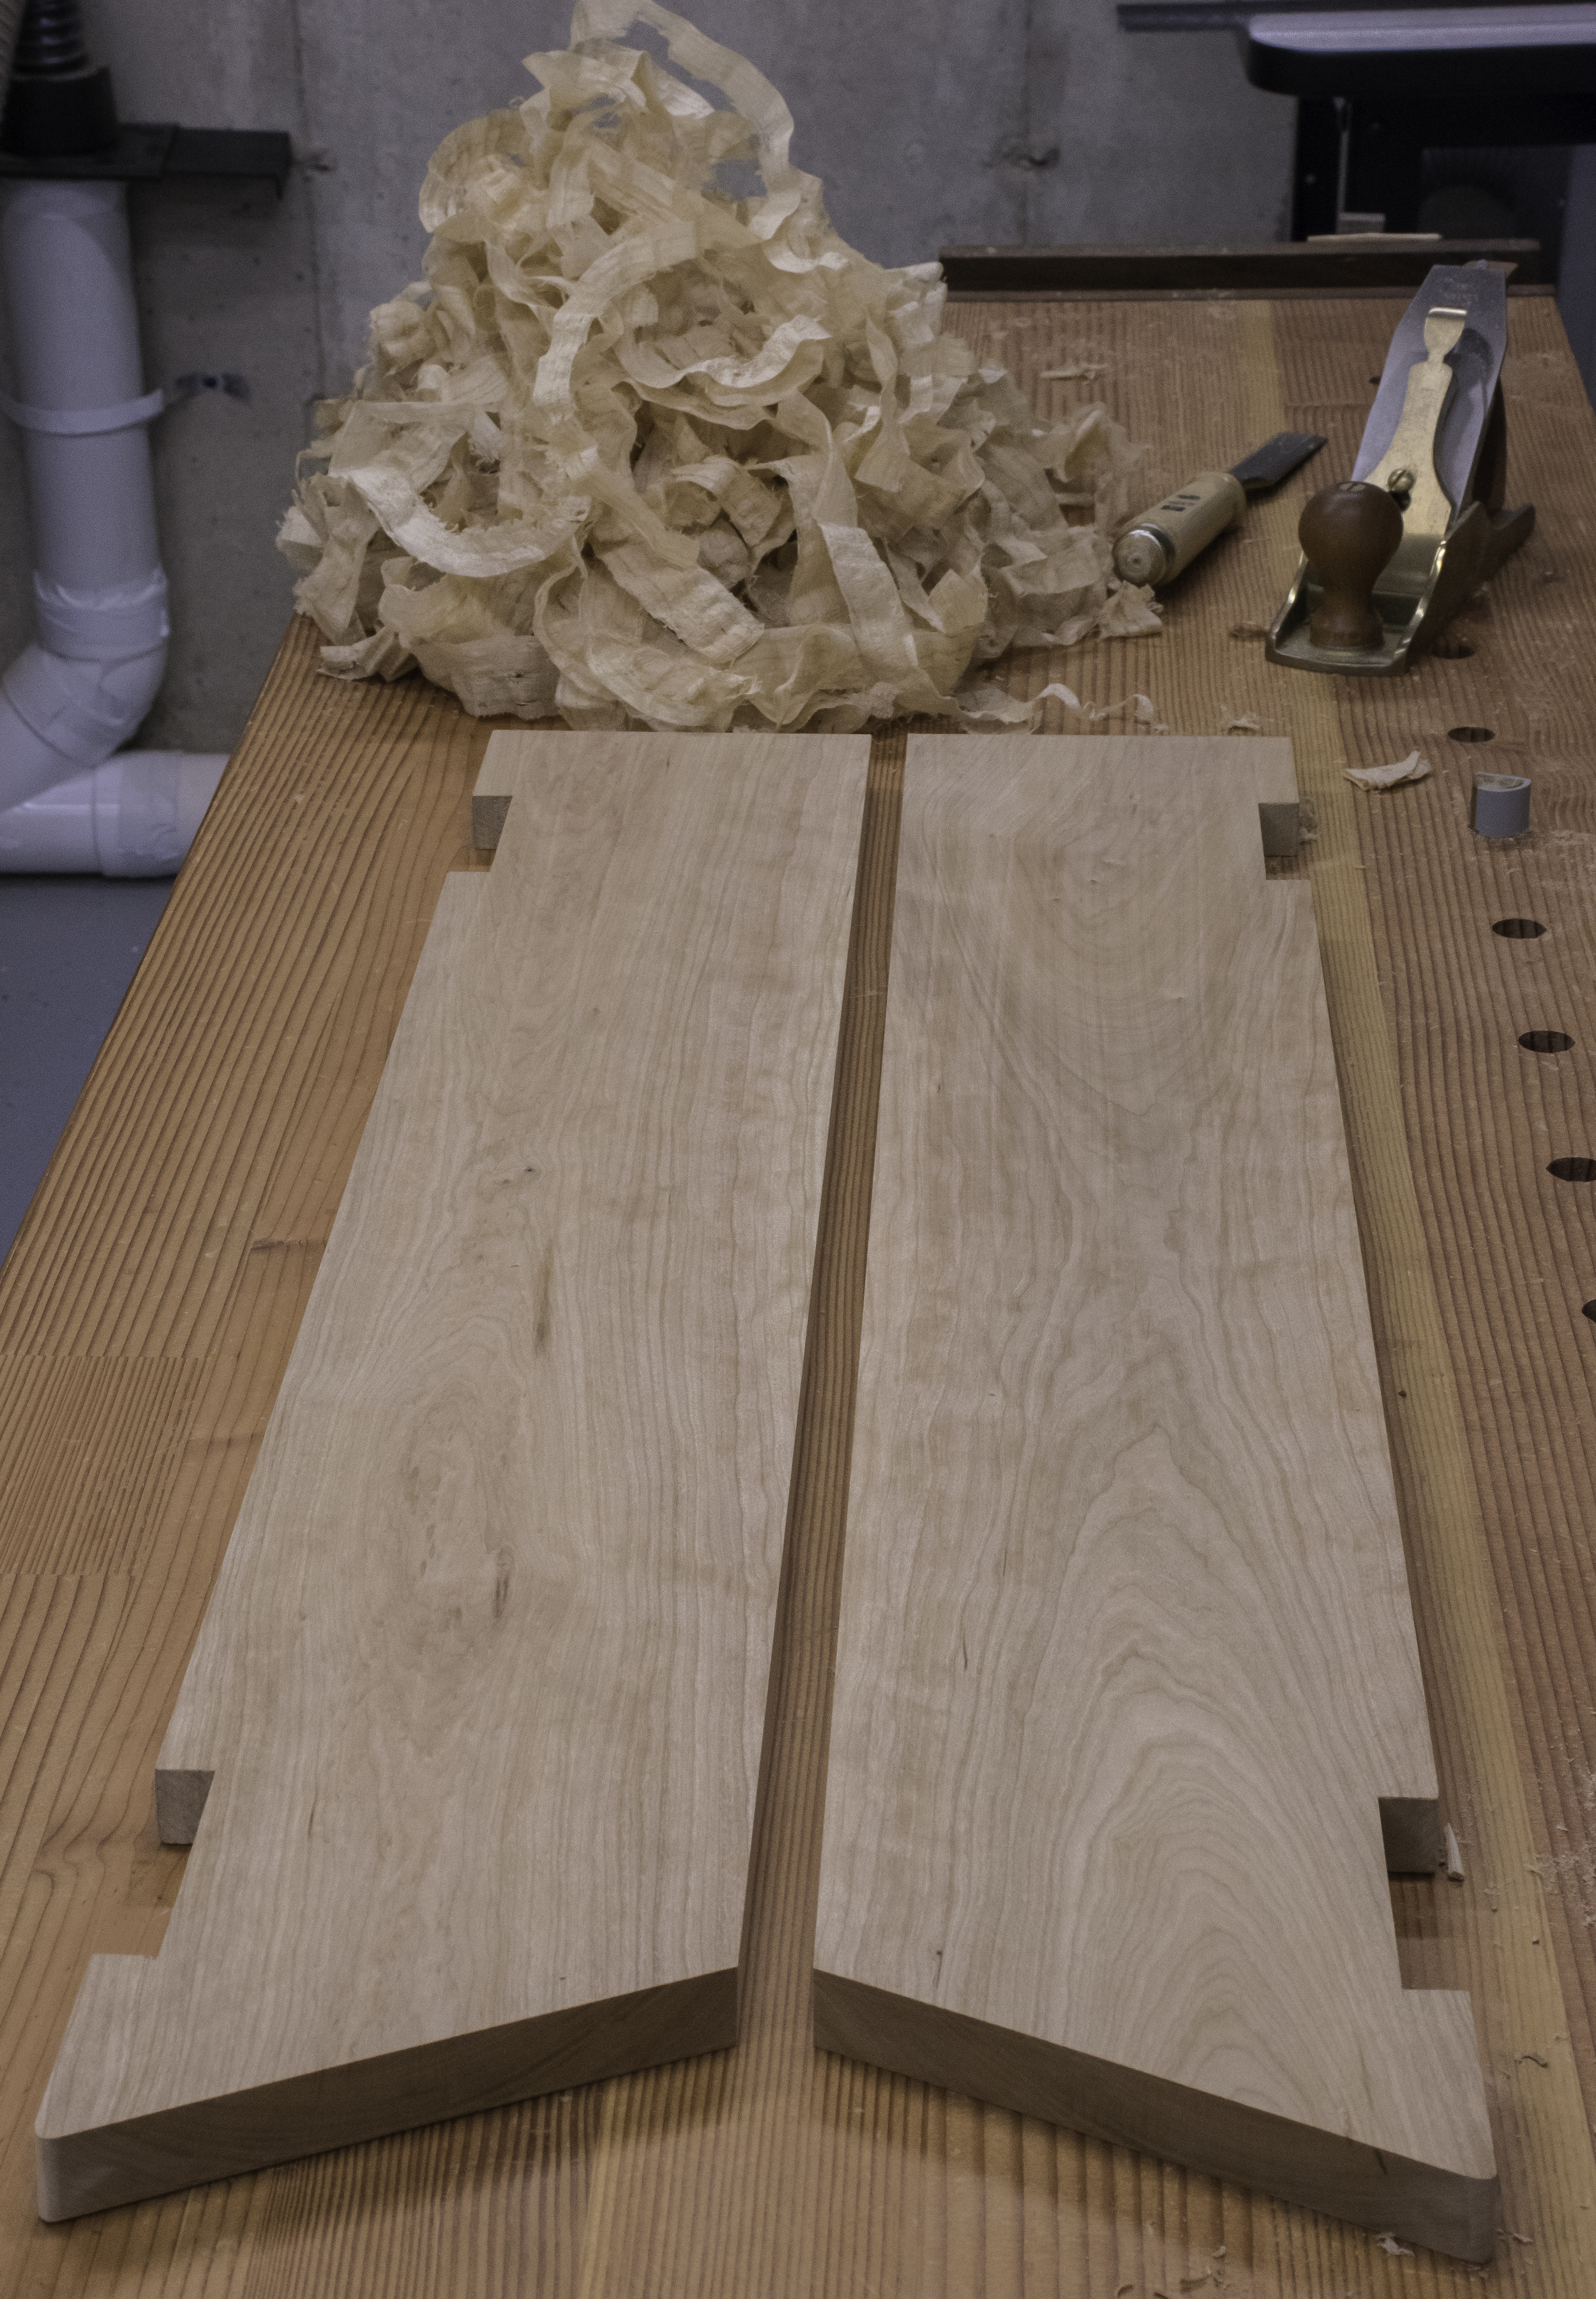 The top boards ready for glue-up.